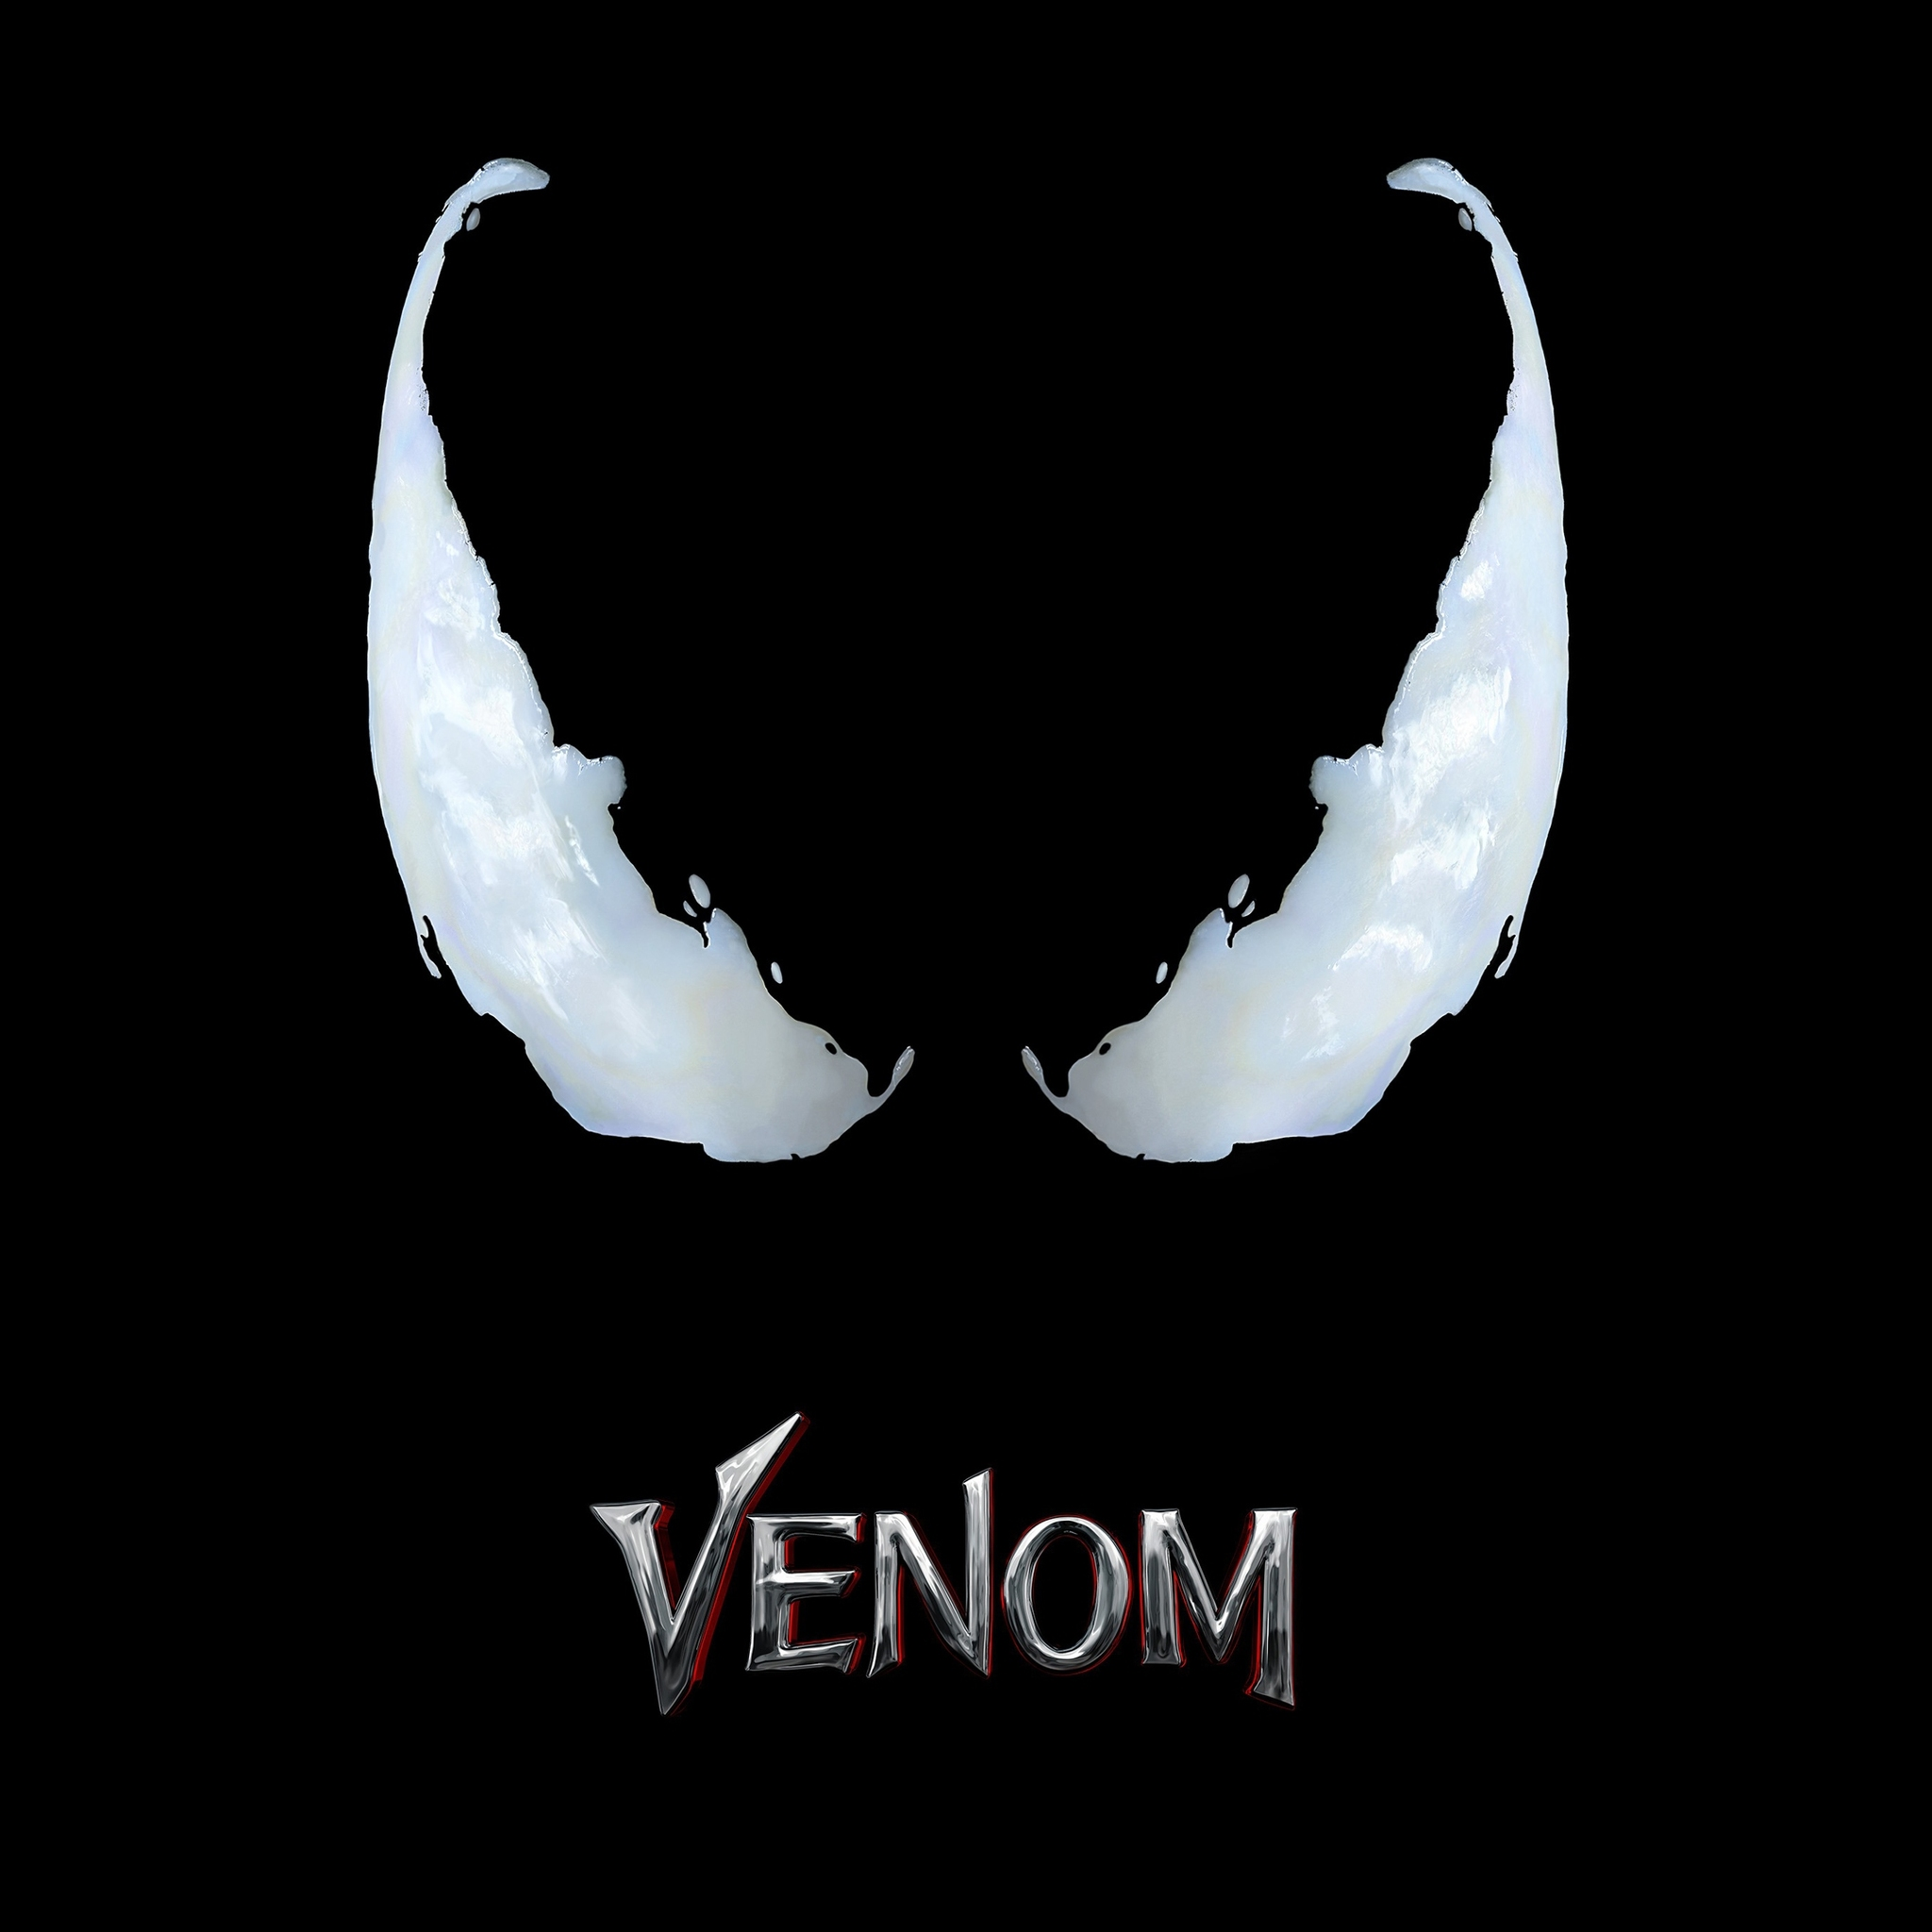 2048x2048 Venom Movie Logo 4k Ipad Air HD 4k Wallpapers, Images, Backgrounds, Photos and Pictures